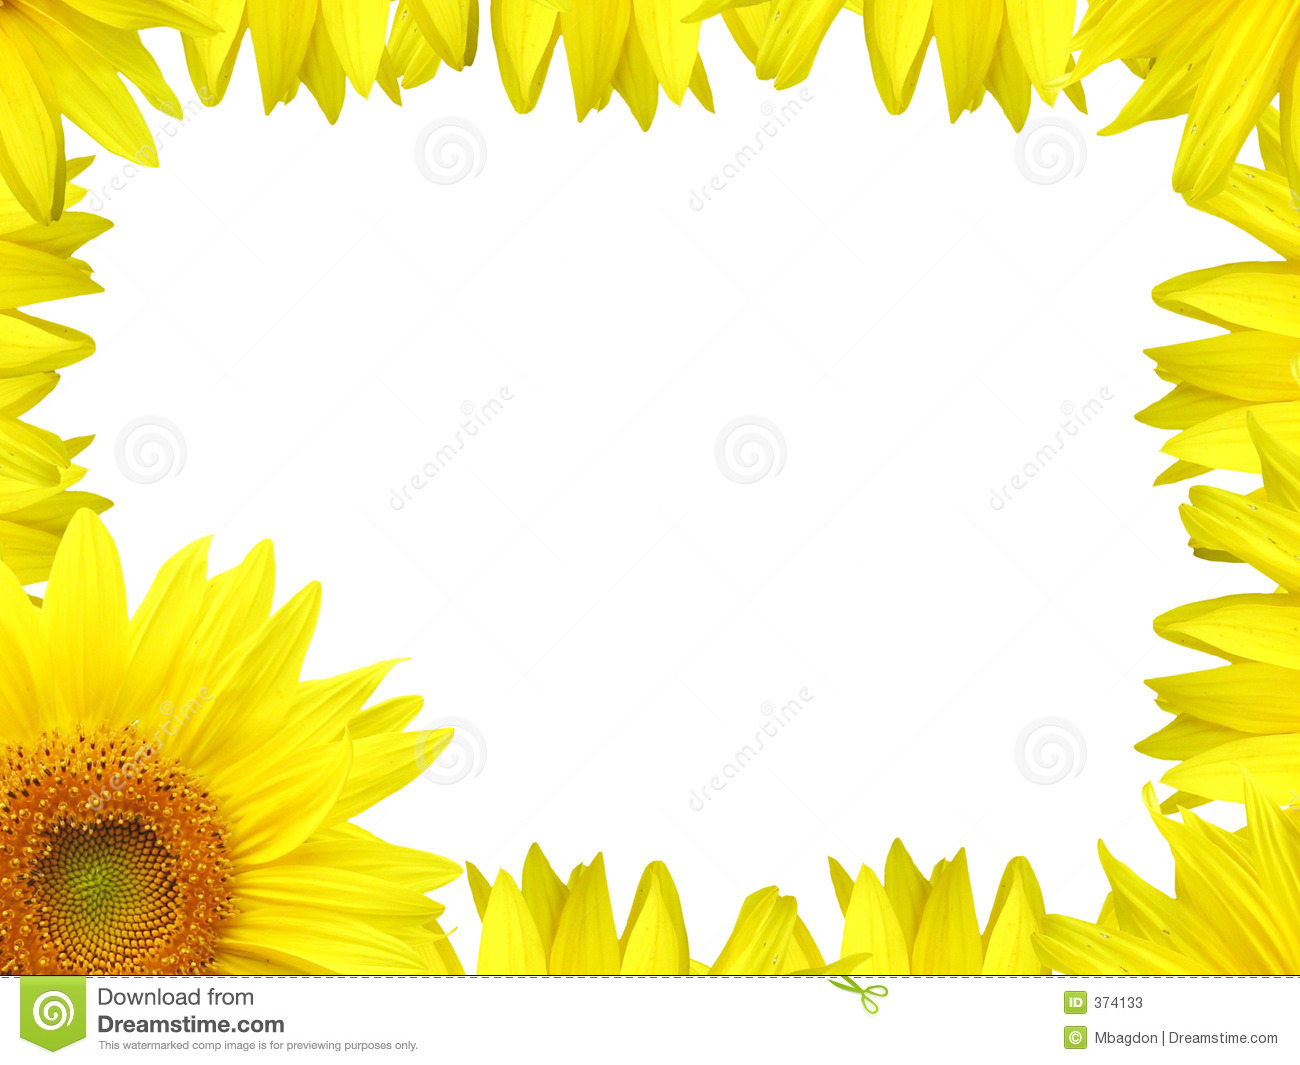 Stock Photos: Flower border